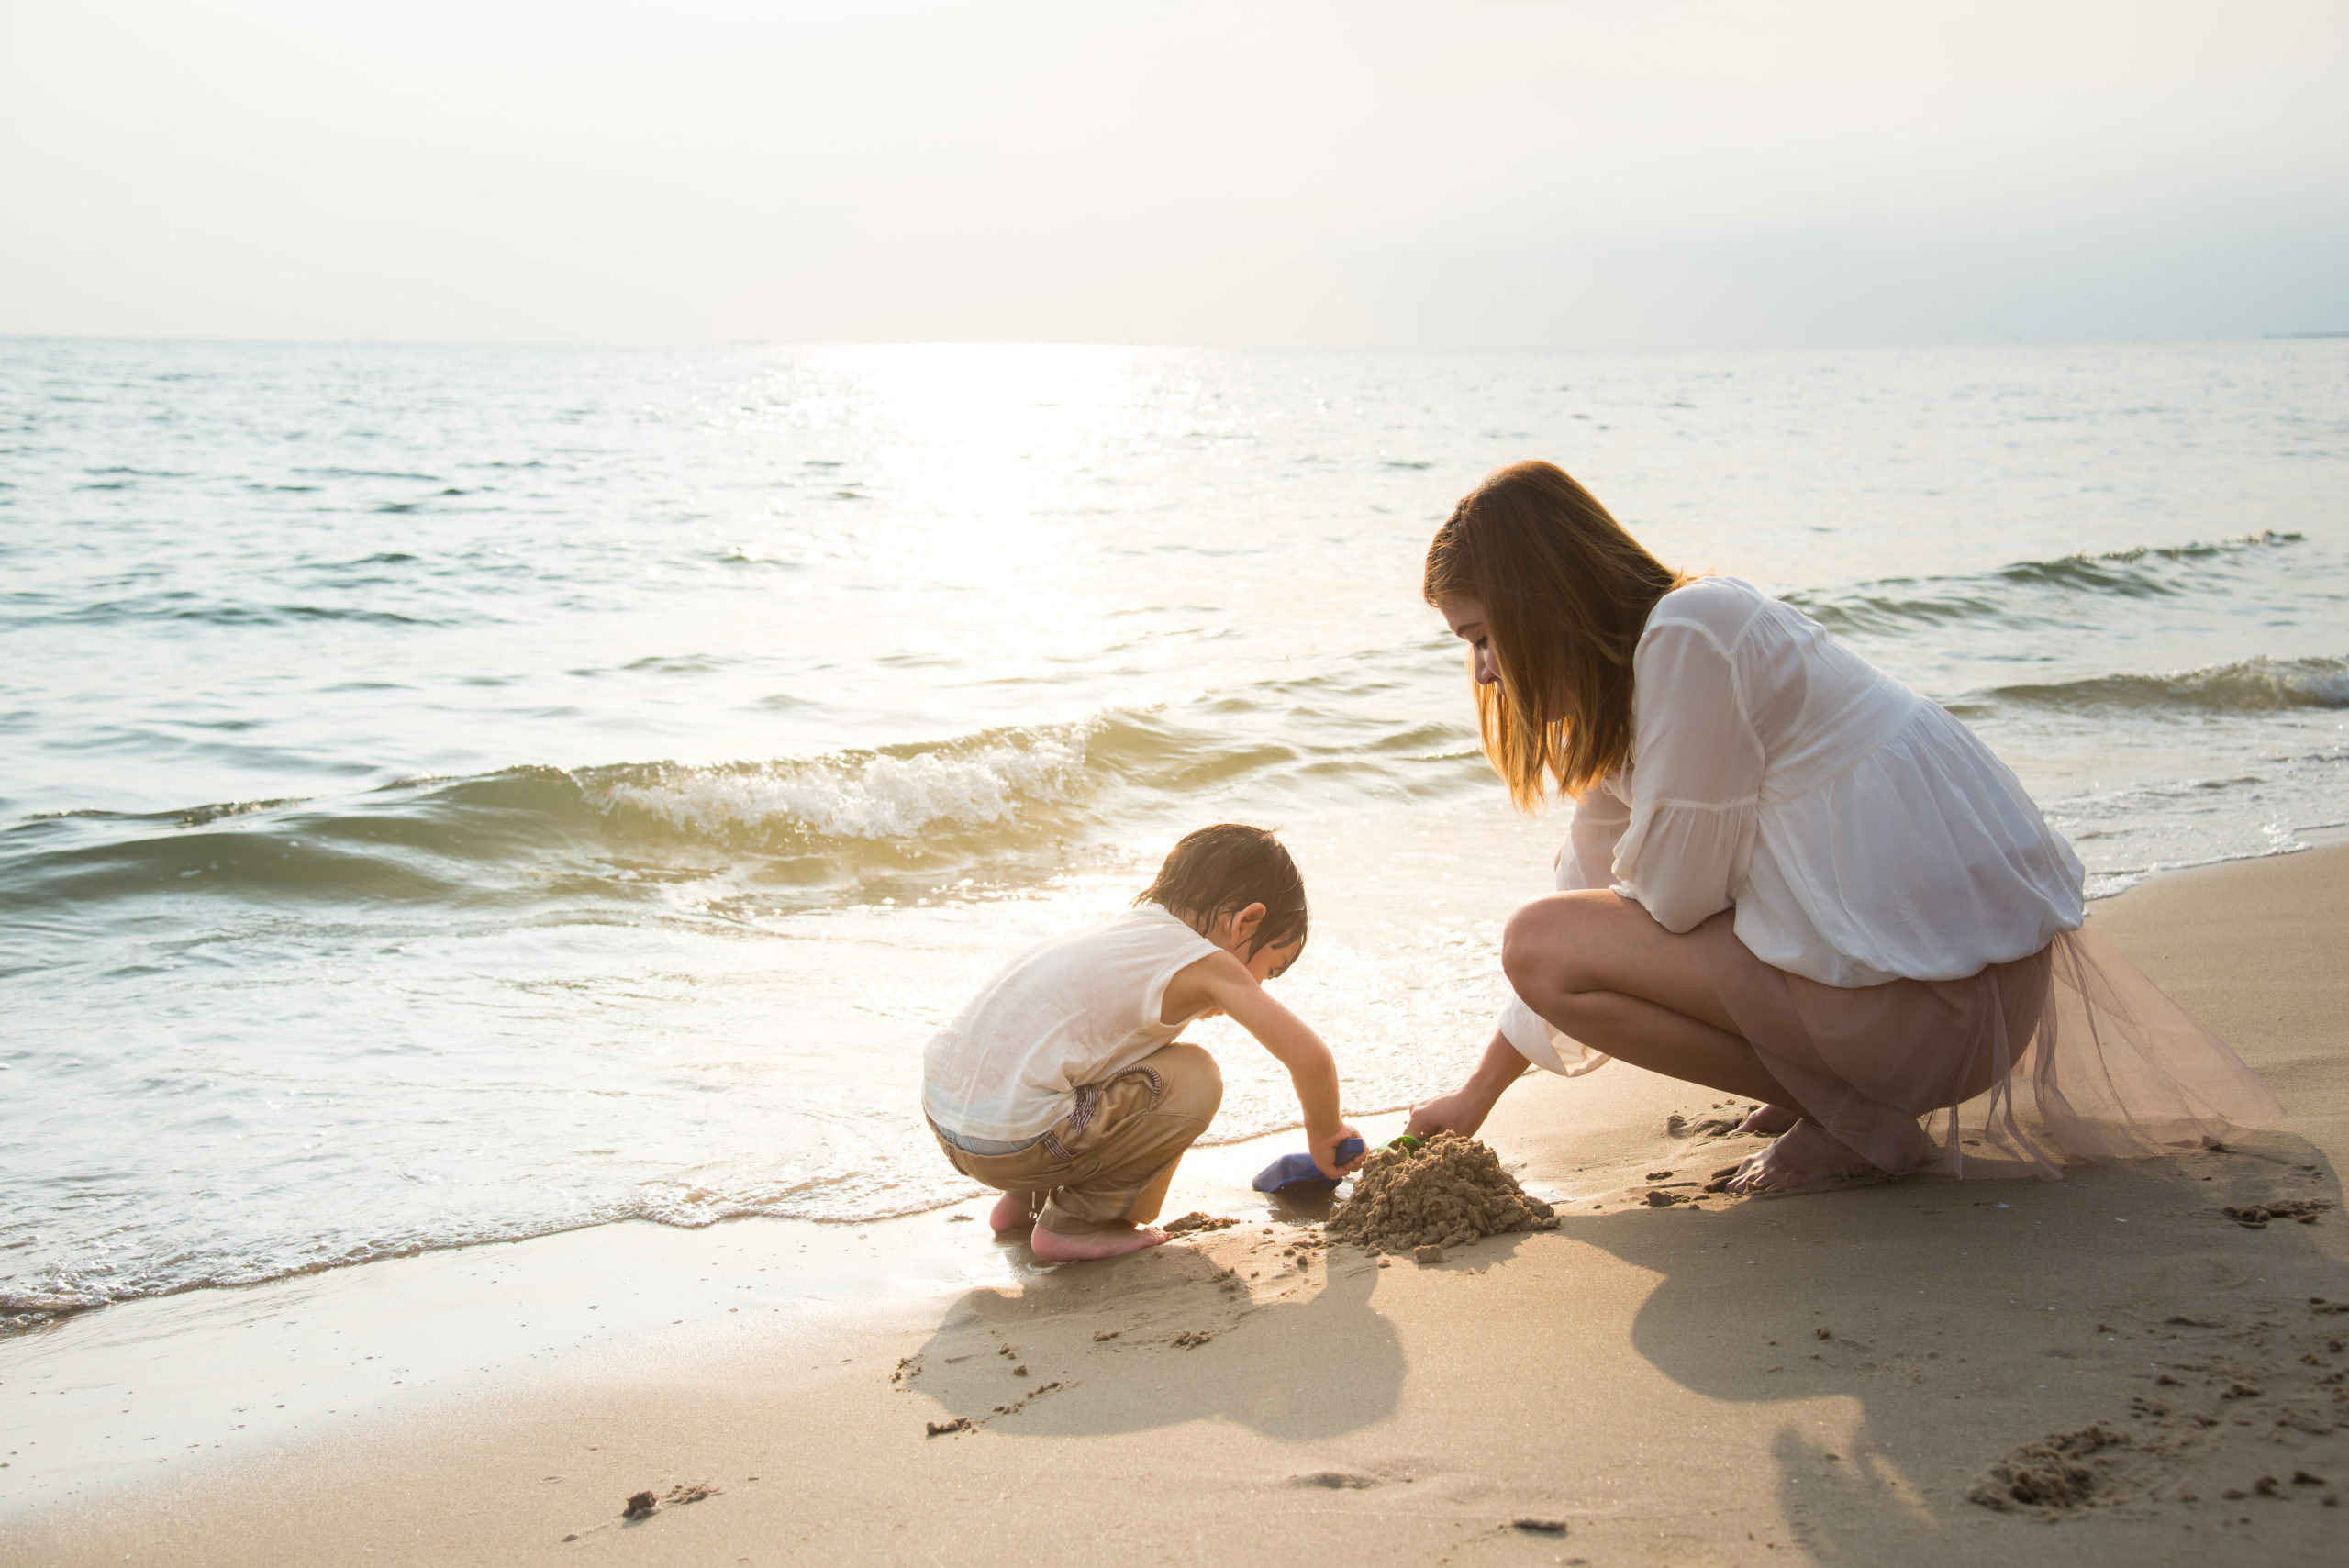 mother-son-playing-on-beachvintage-filter-329433899